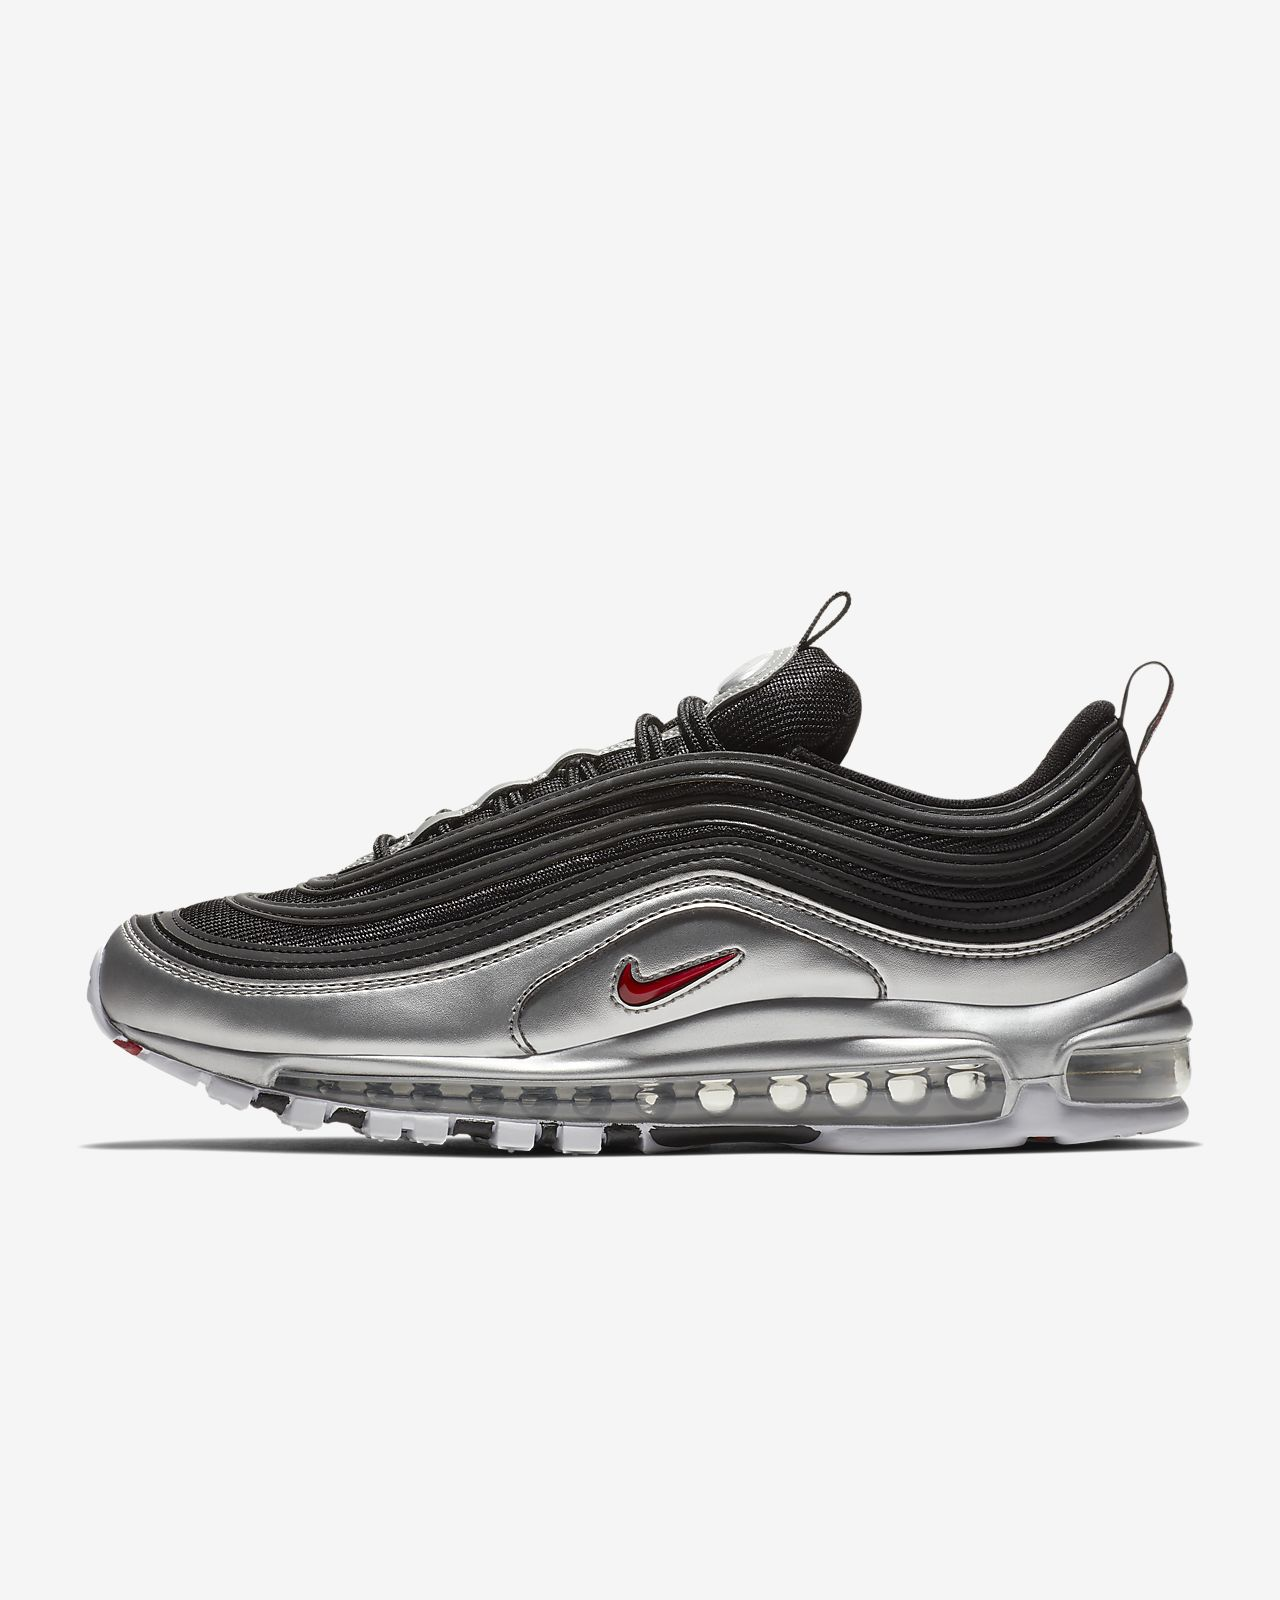 factory authentic 47b20 b0644 Chaussure Nike Air Max 97 QS pour Homme